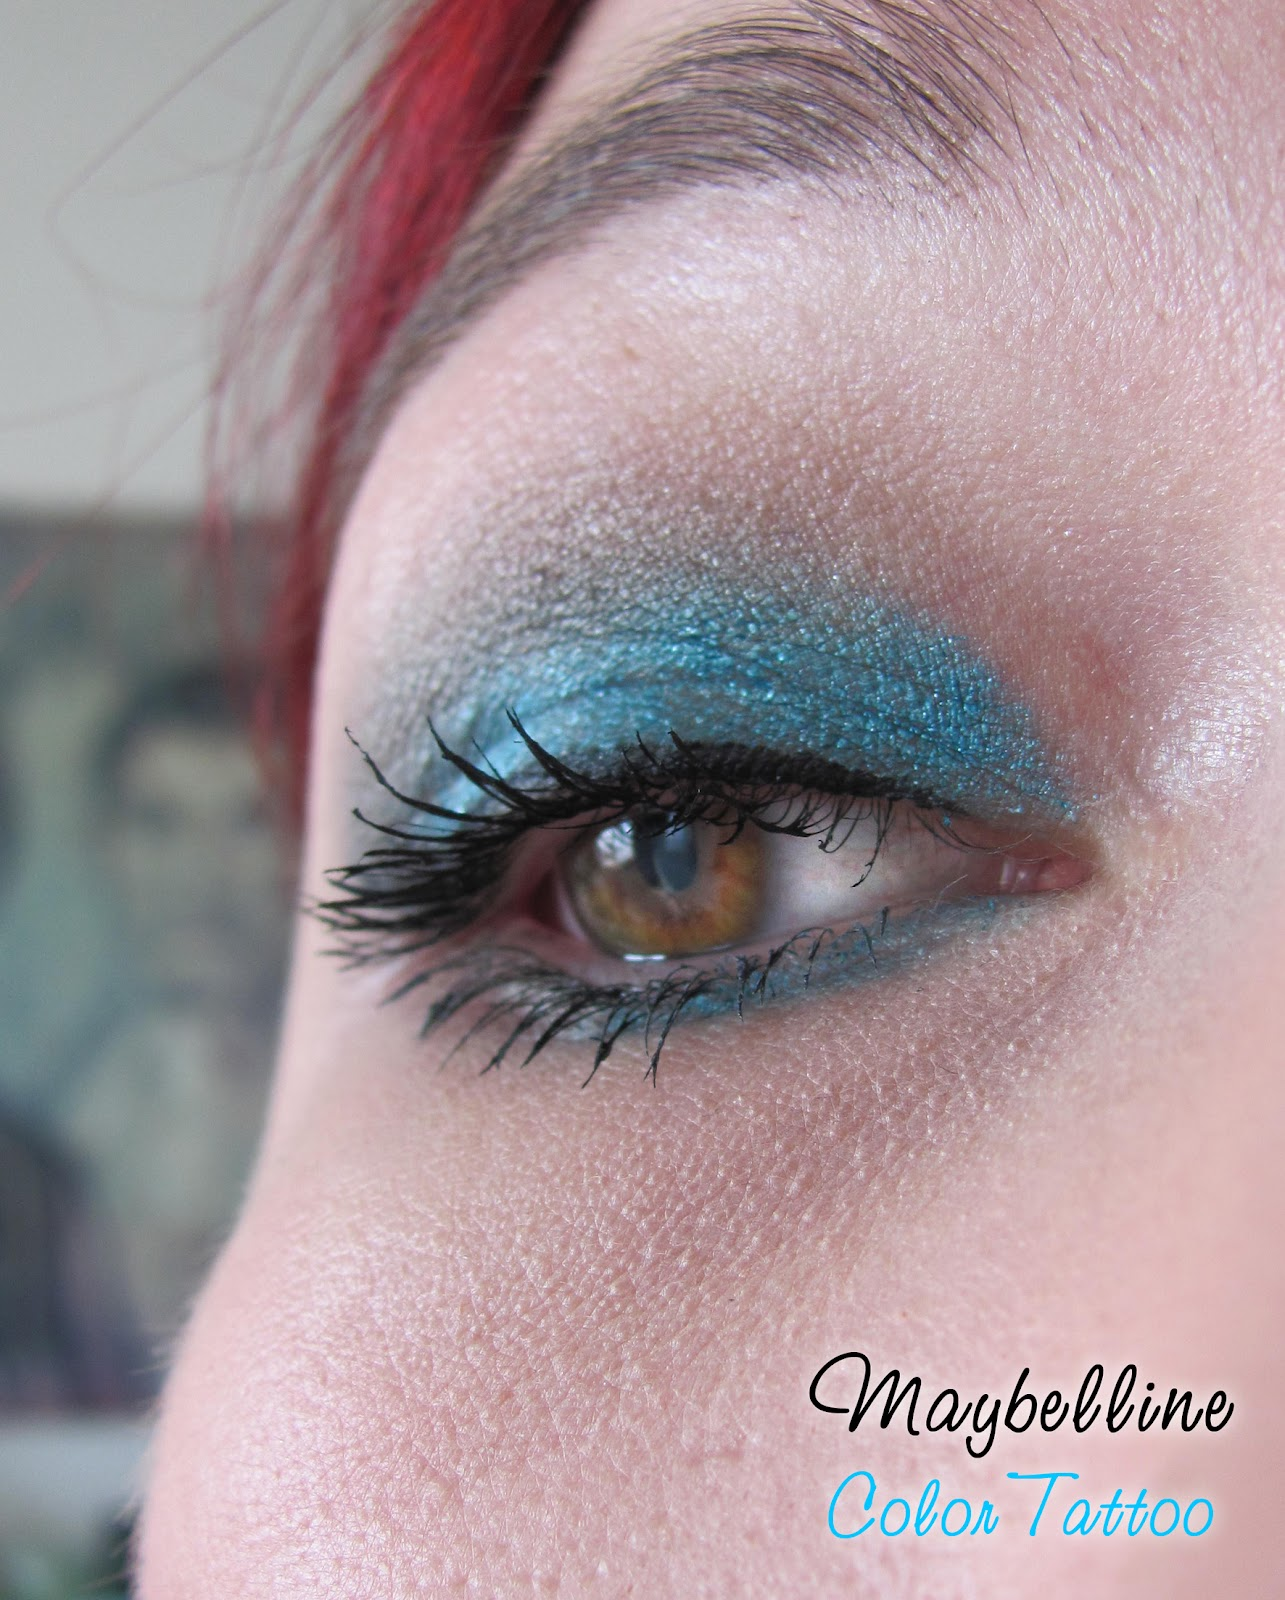 Apocalipstick maybelline color tattoo look for Color tattoo maybelline